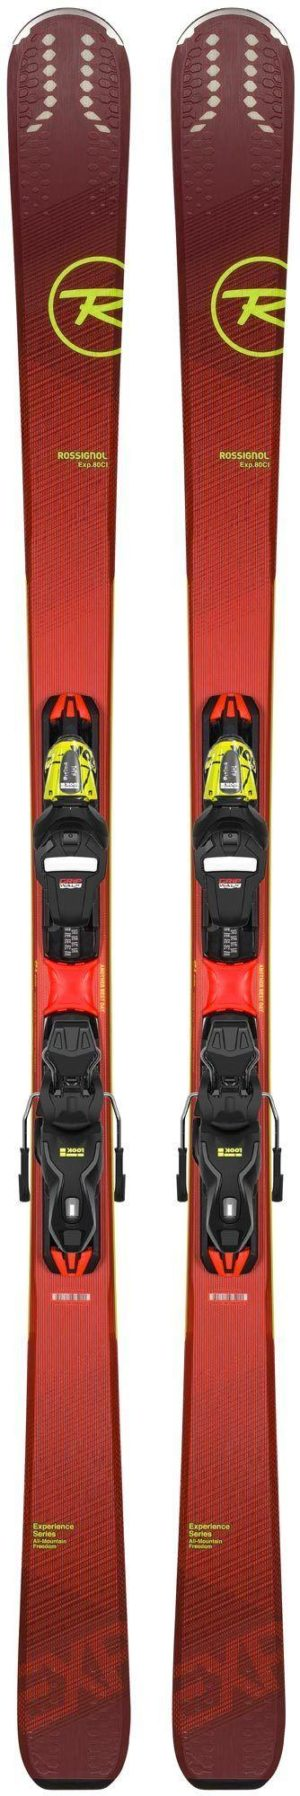 Rossignol Experience 80 Ci Skis + Xpress 11 Bindings - 2020